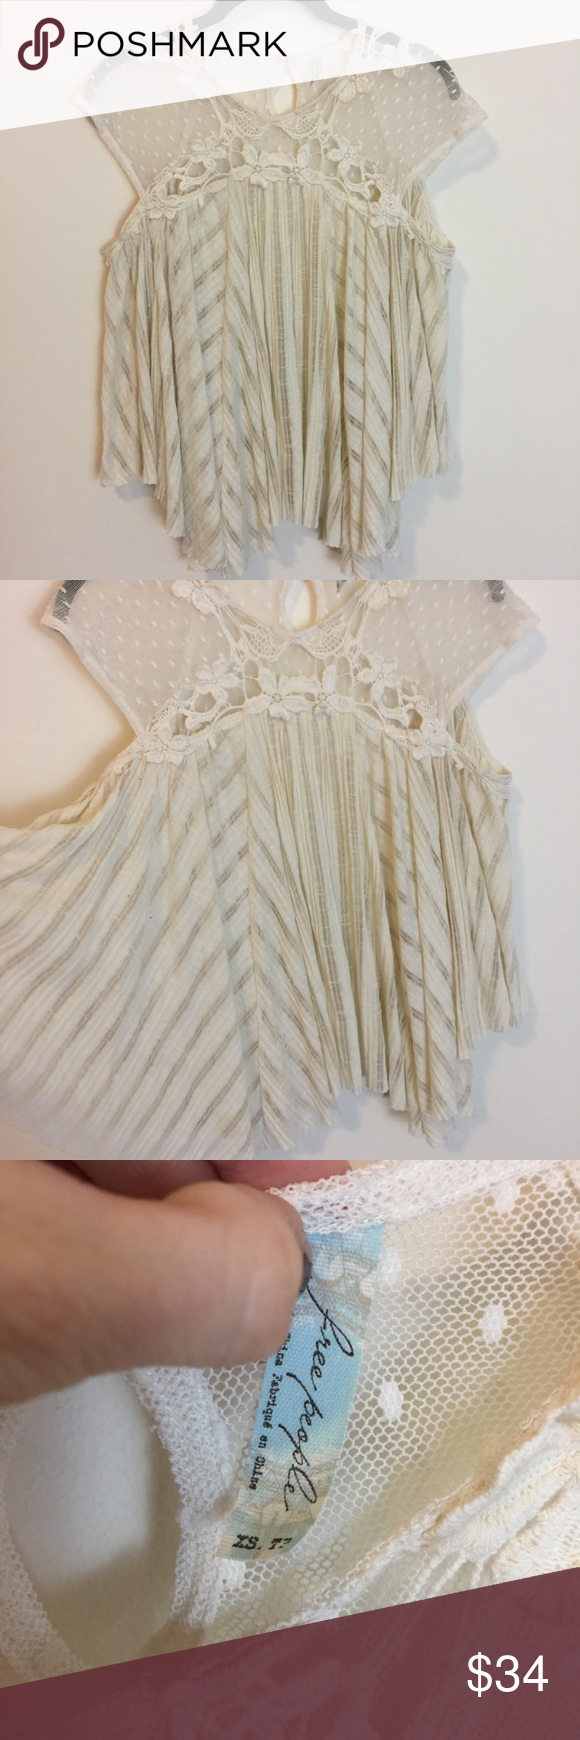 Free People Ivory Sheer Asymmetrical Blouse Top Free People Top with short sleeves and is sheer with stripe like pattern. Worn lightly as is. Free People Tops